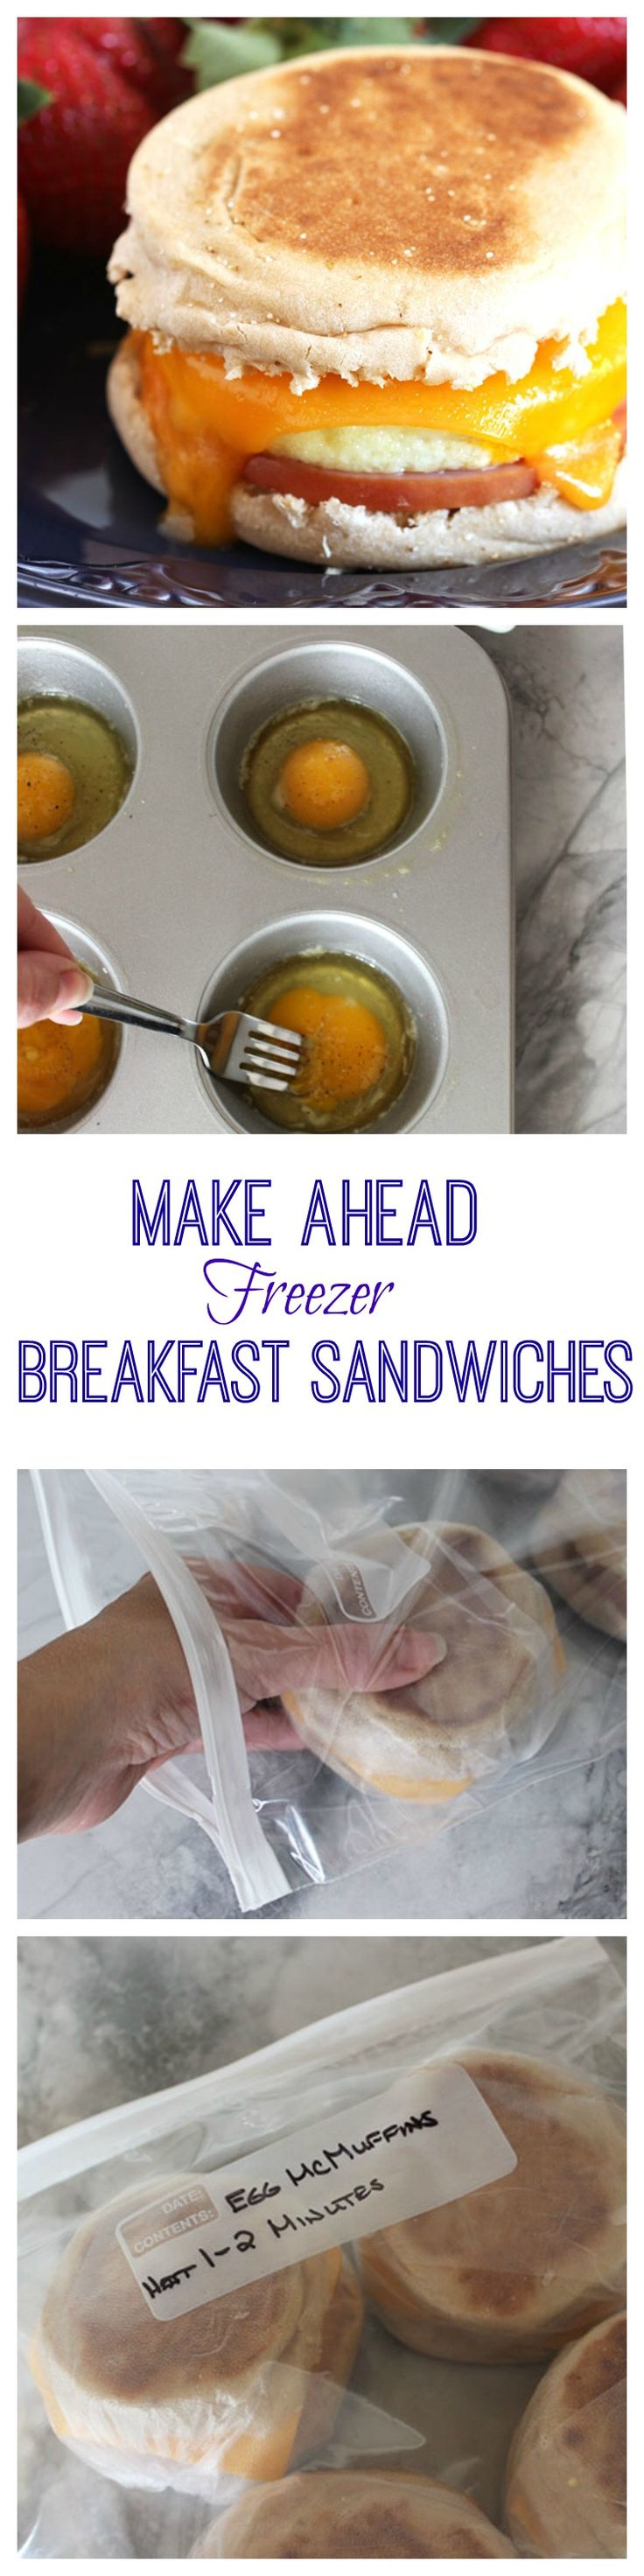 Easy, make ahead breakfast sandwiches that are ready when you are.  These copycat Egg McMuffins are frozen for quick, healthy breakfasts on the go. | @suburbansoapbox: